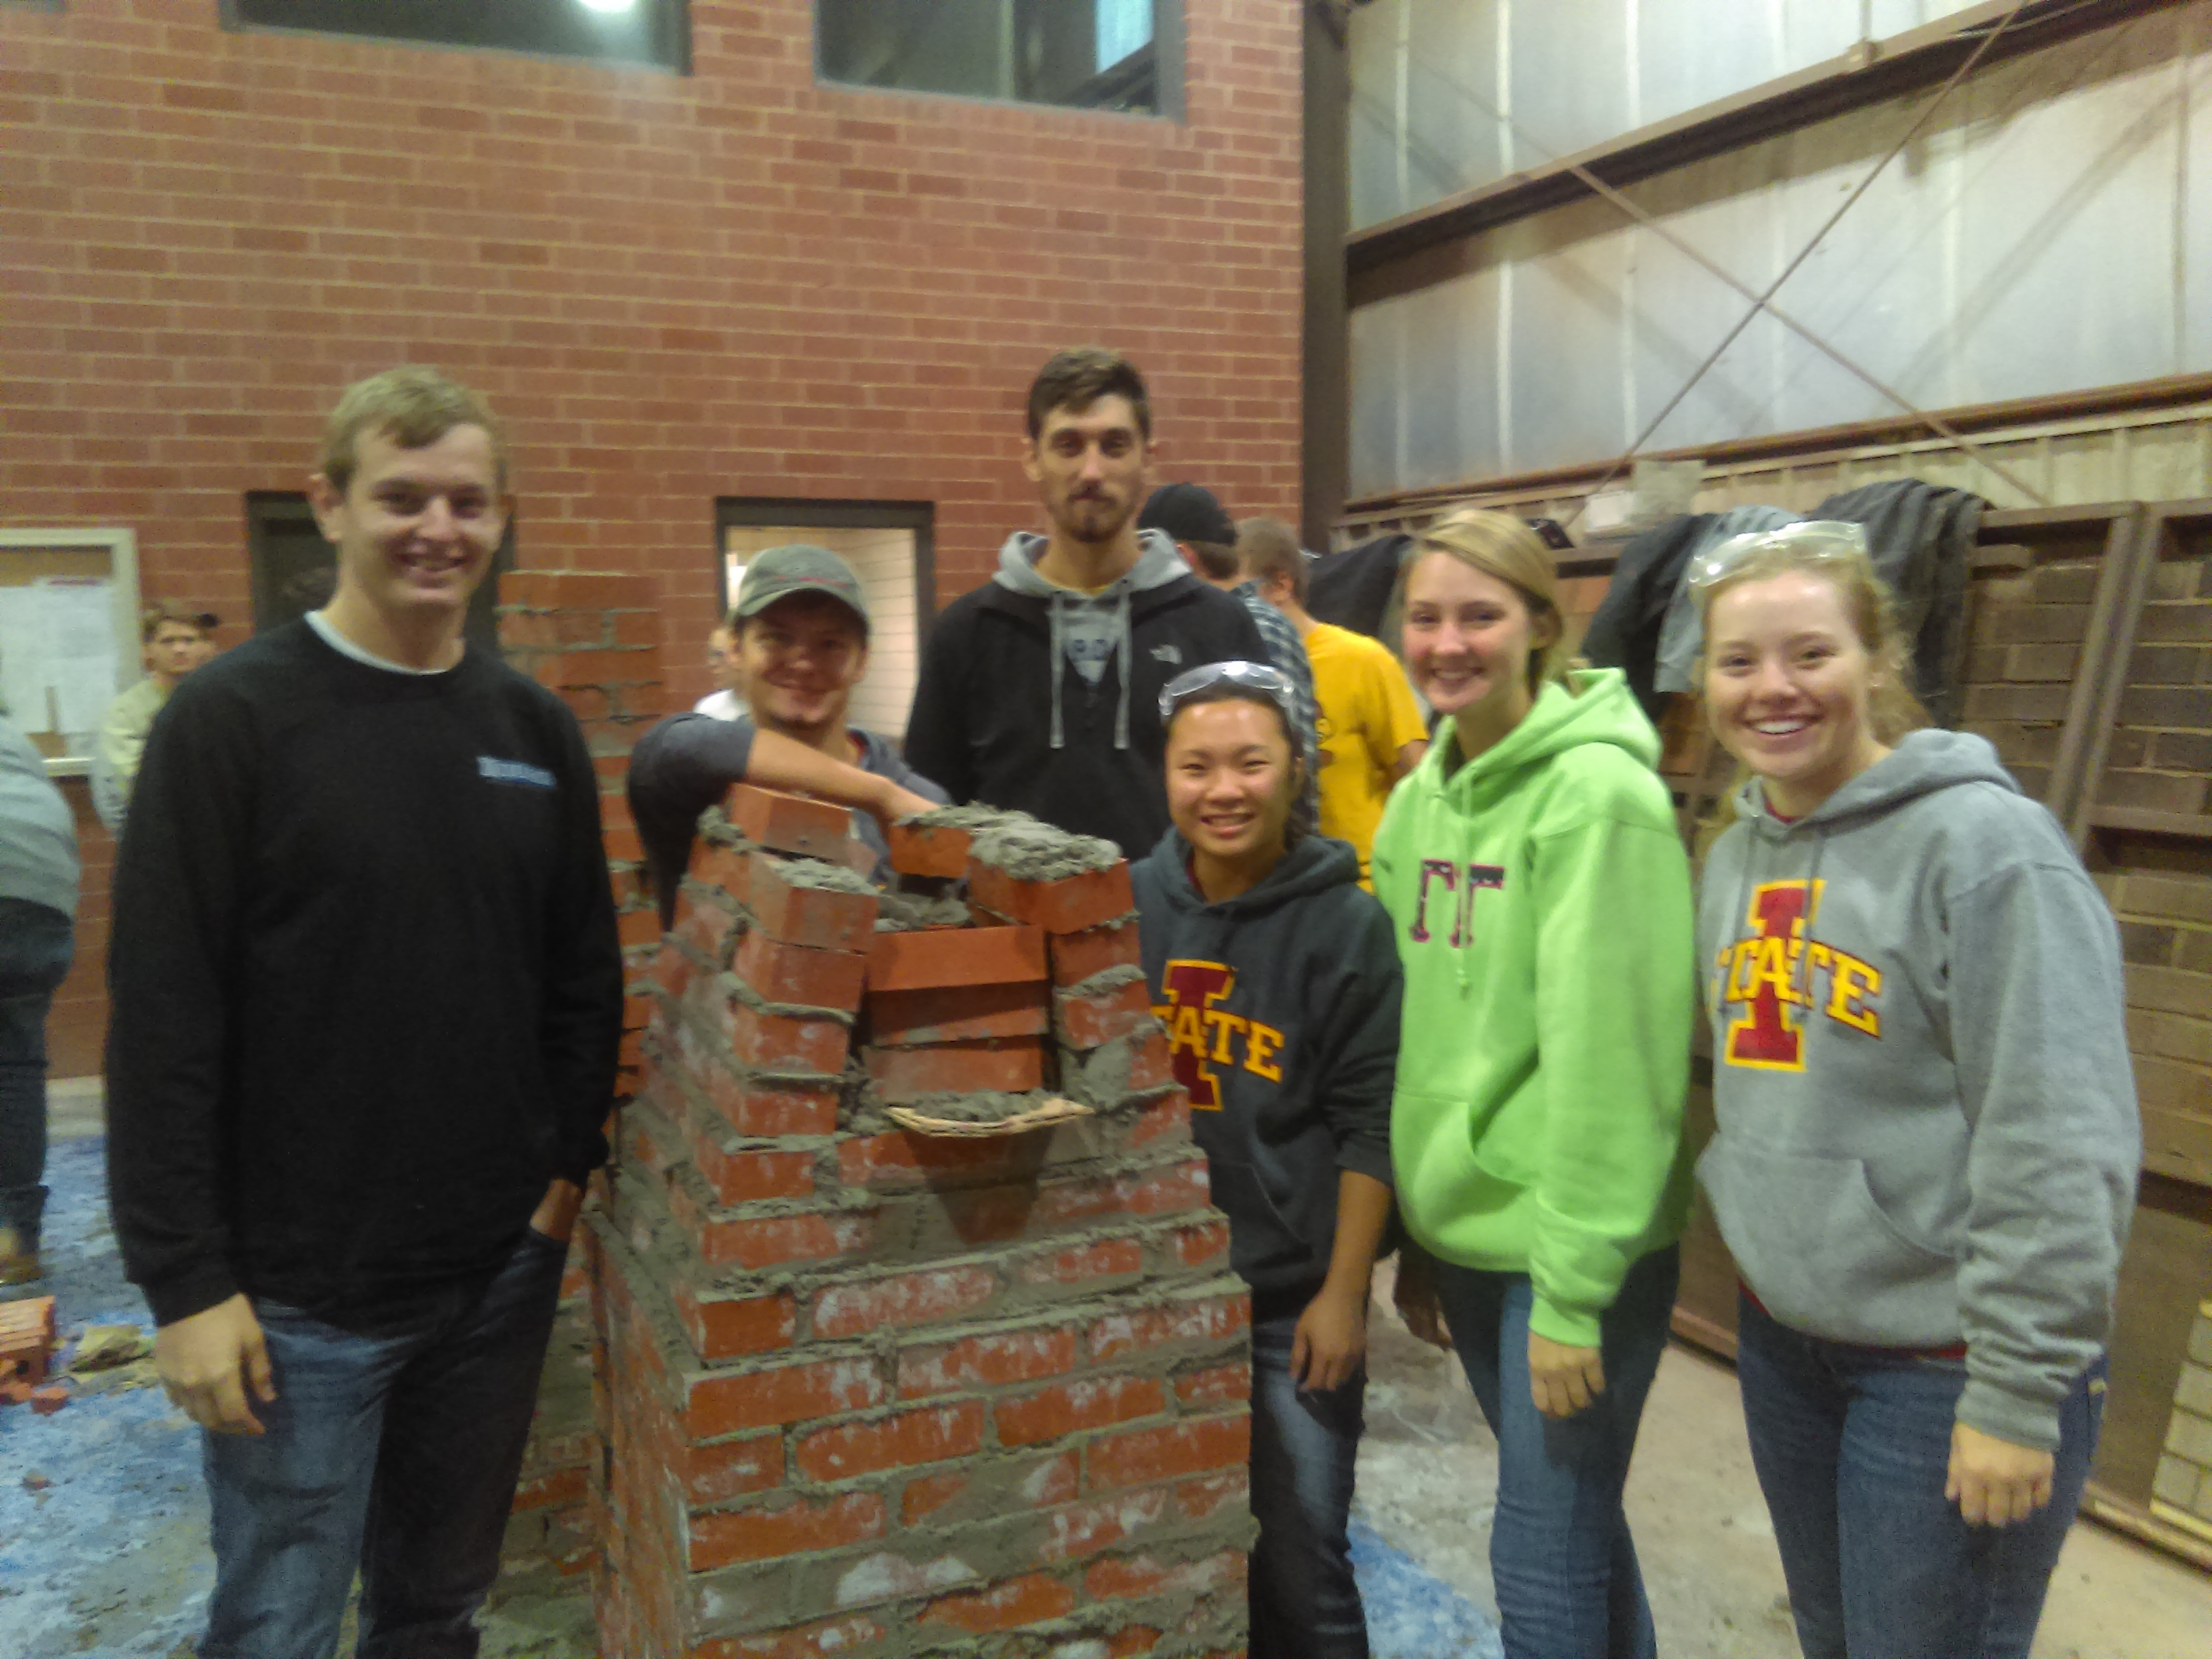 Penton (front middle) and team members with finished campanile (Photo courtesy Brad Perkins)